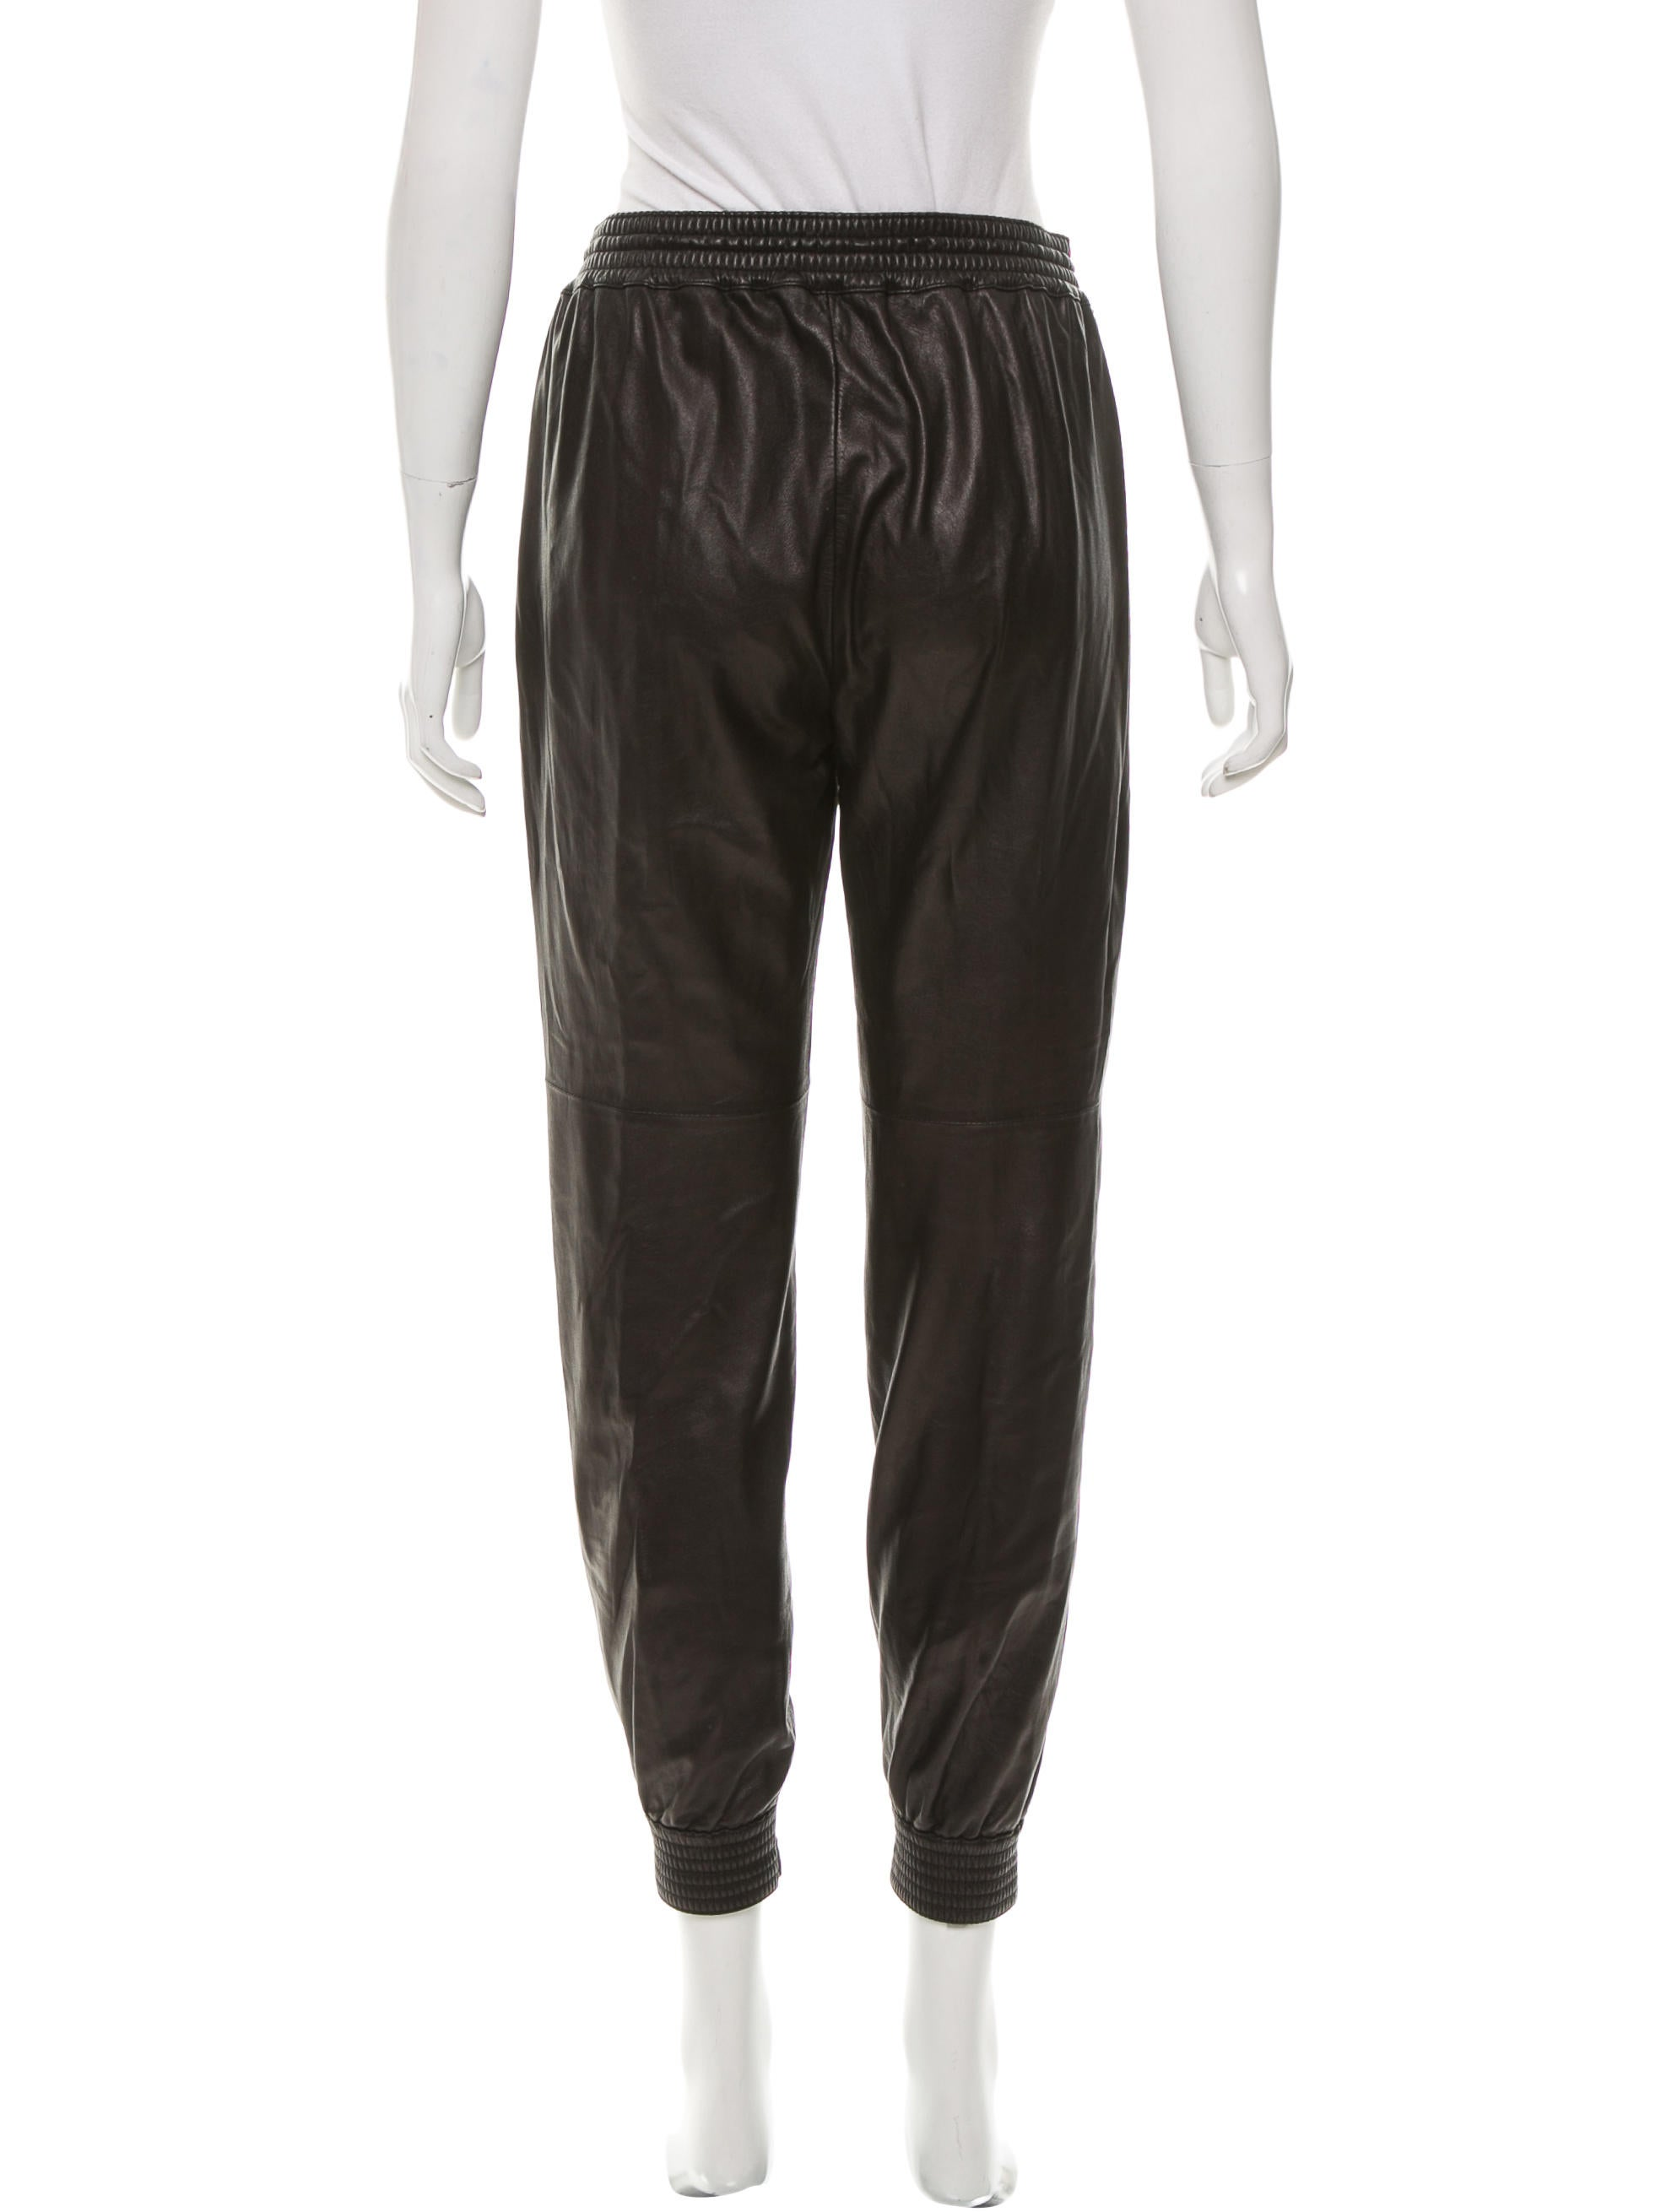 Innovative Leather Jogging Pants For Women Cotton Contrast Faux Leather Joggers